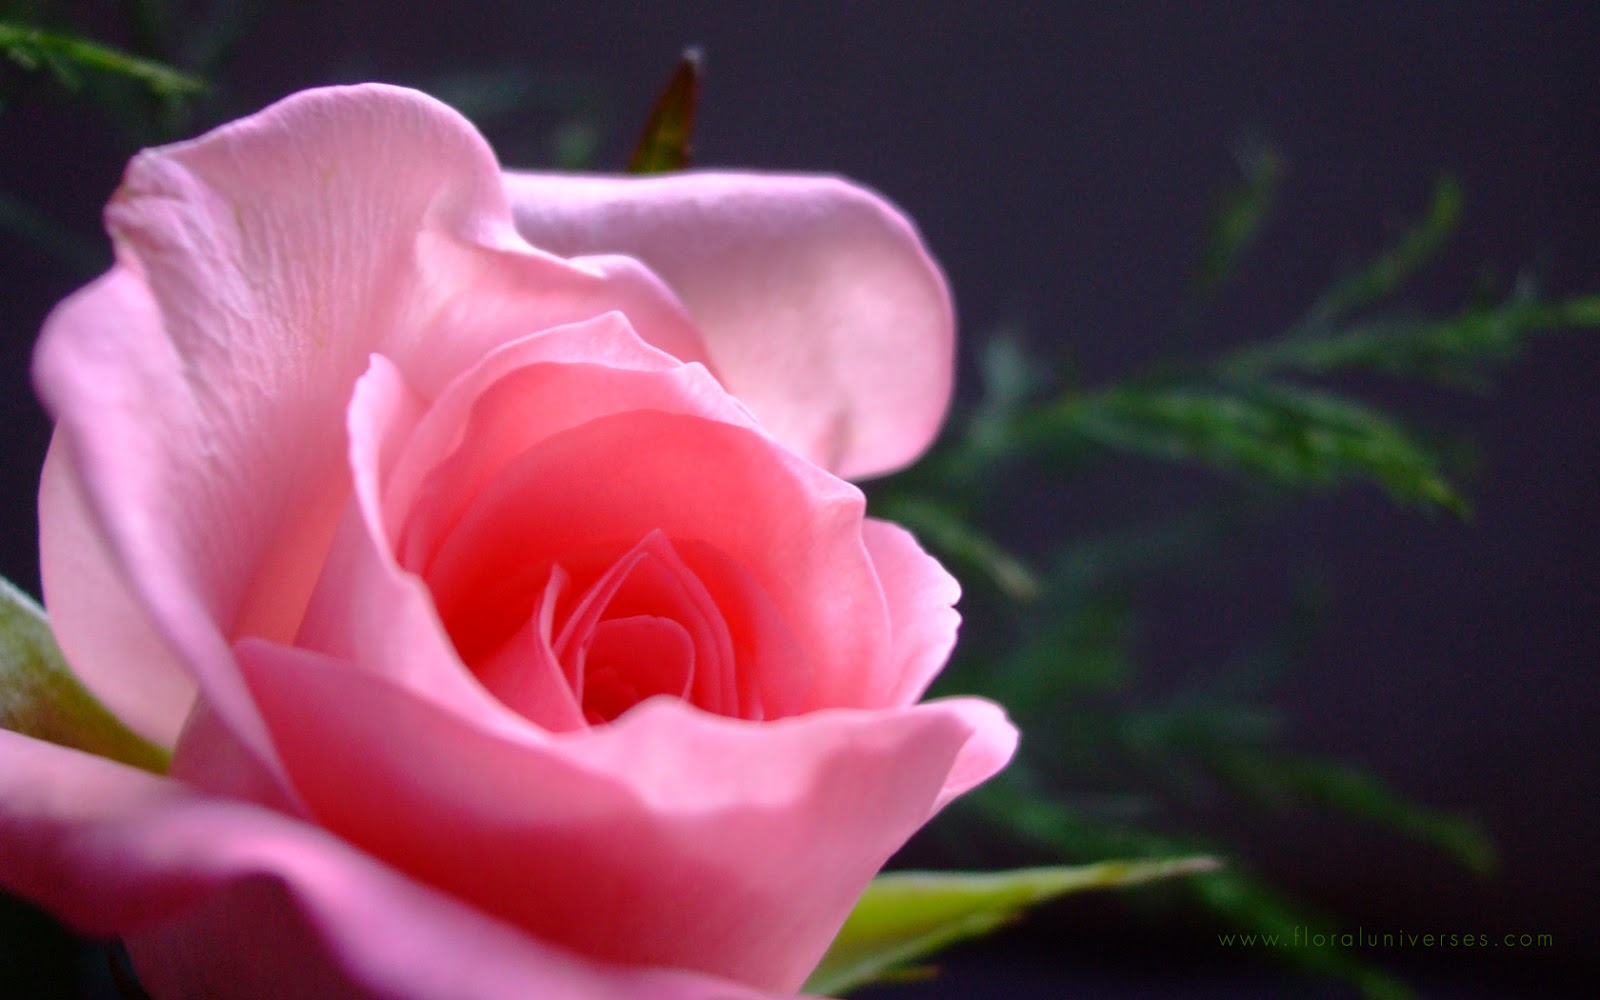 Free desktop wallpaper pink roses wallpapersafari - Pink rose hd wallpaper ...